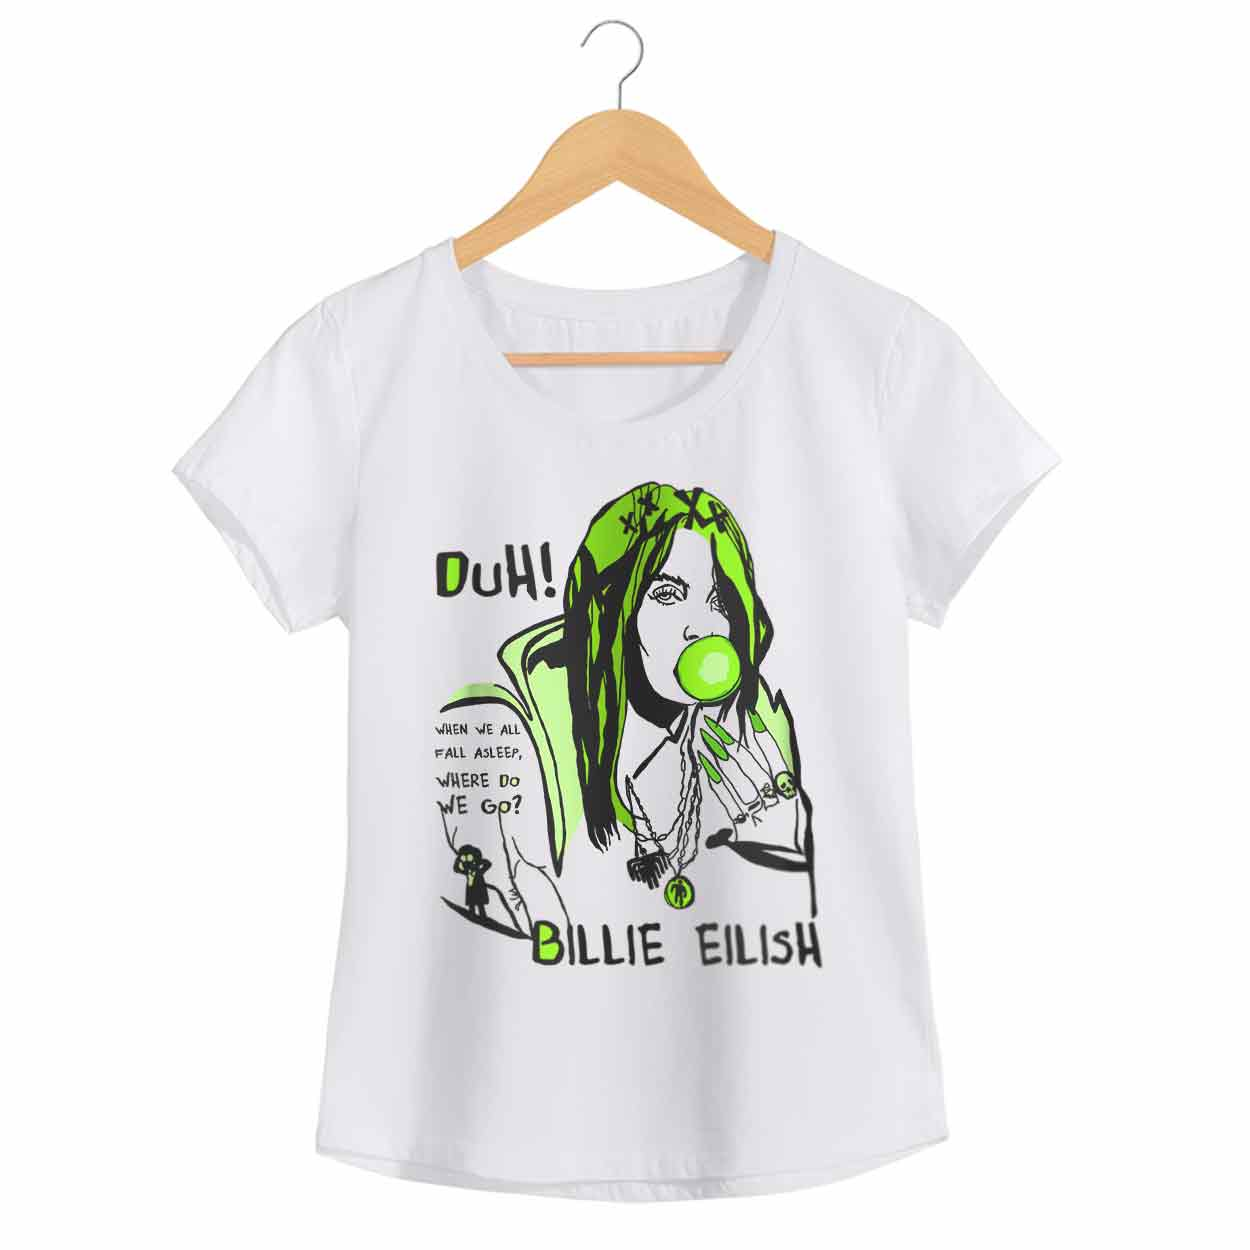 Camiseta - When We All Fall Asleep, Where Do We Go? - Billie Eilish - Feminino